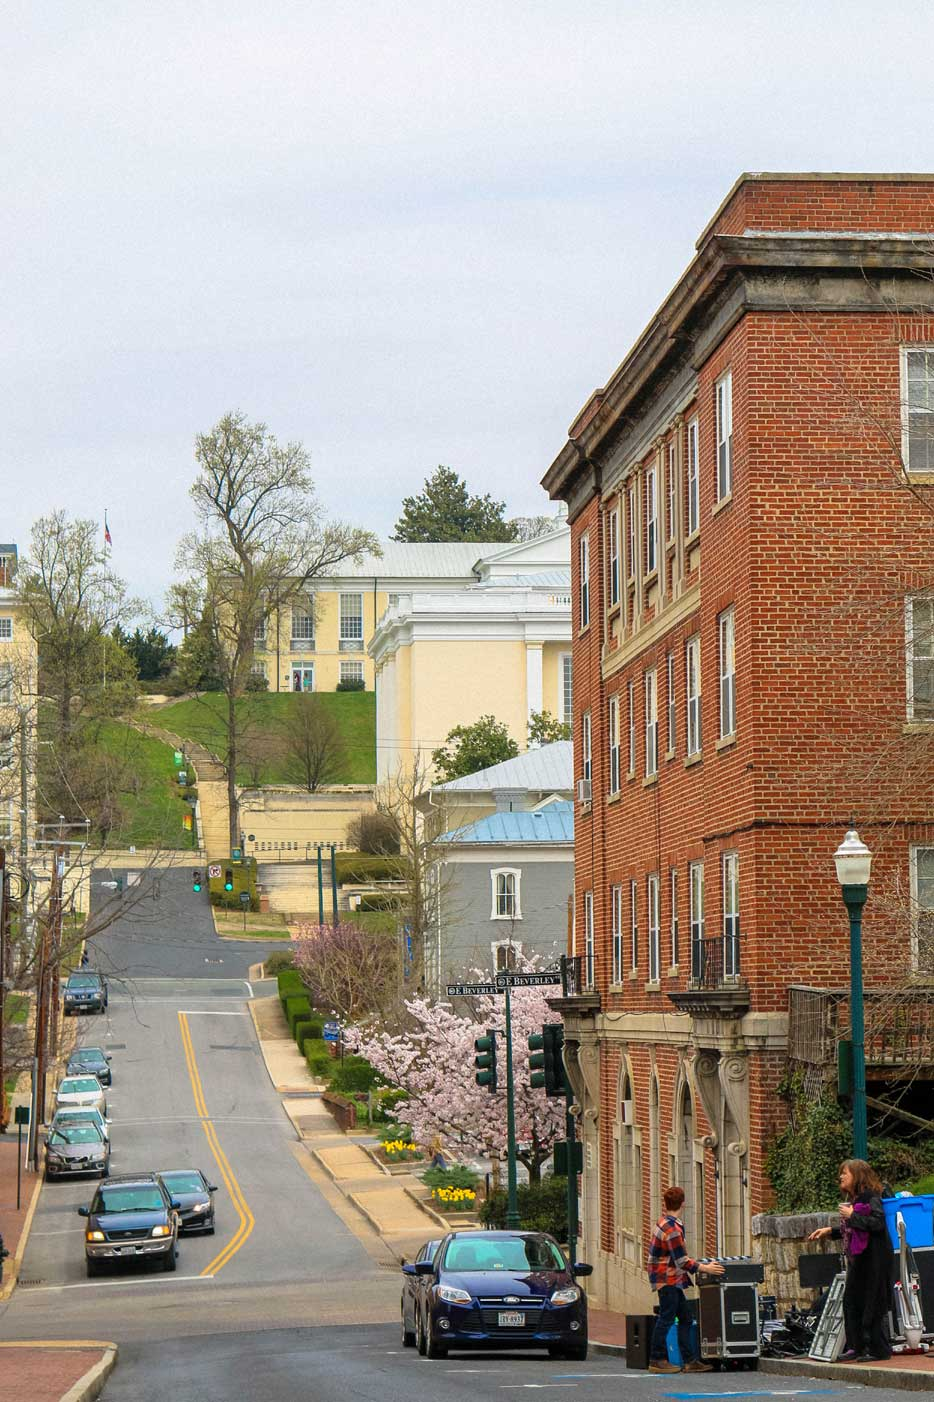 Downtown street in Staunton, VA